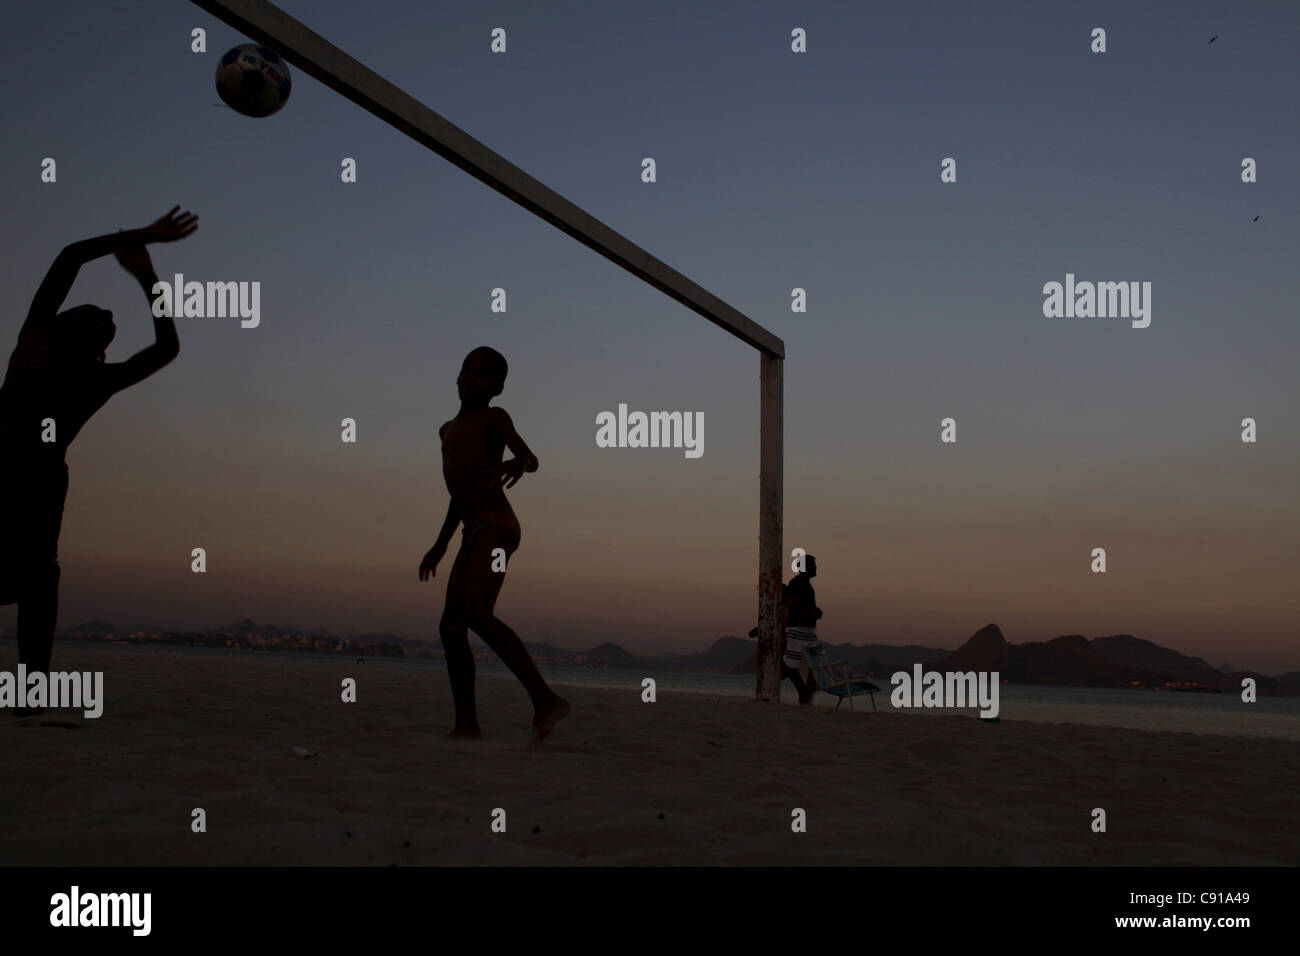 RIO DE JANEIRO, BRAZIL-JULY 15: Children playing soccer on Flamengo beach on July 15, 2010. (Photo by Lisa Wiltse/Getty - Stock Image